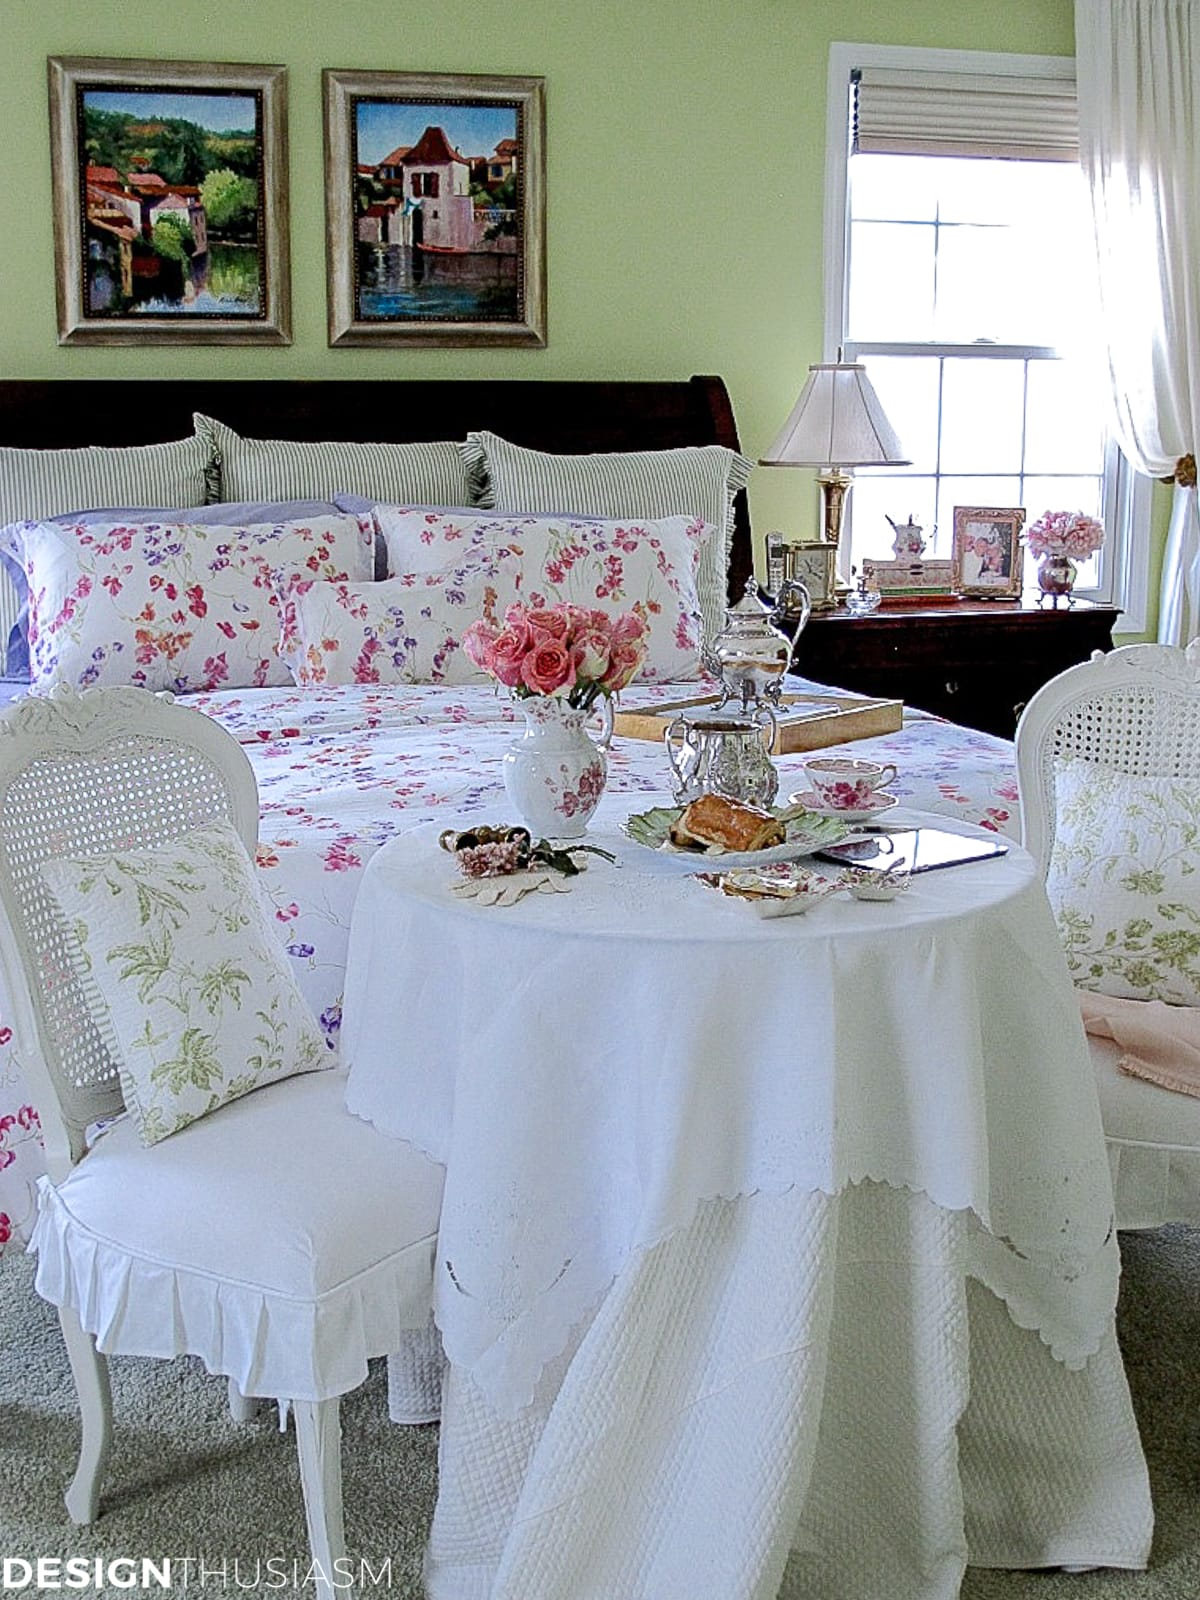 master bedroom decor with a french style bistro table at the foot of the bed